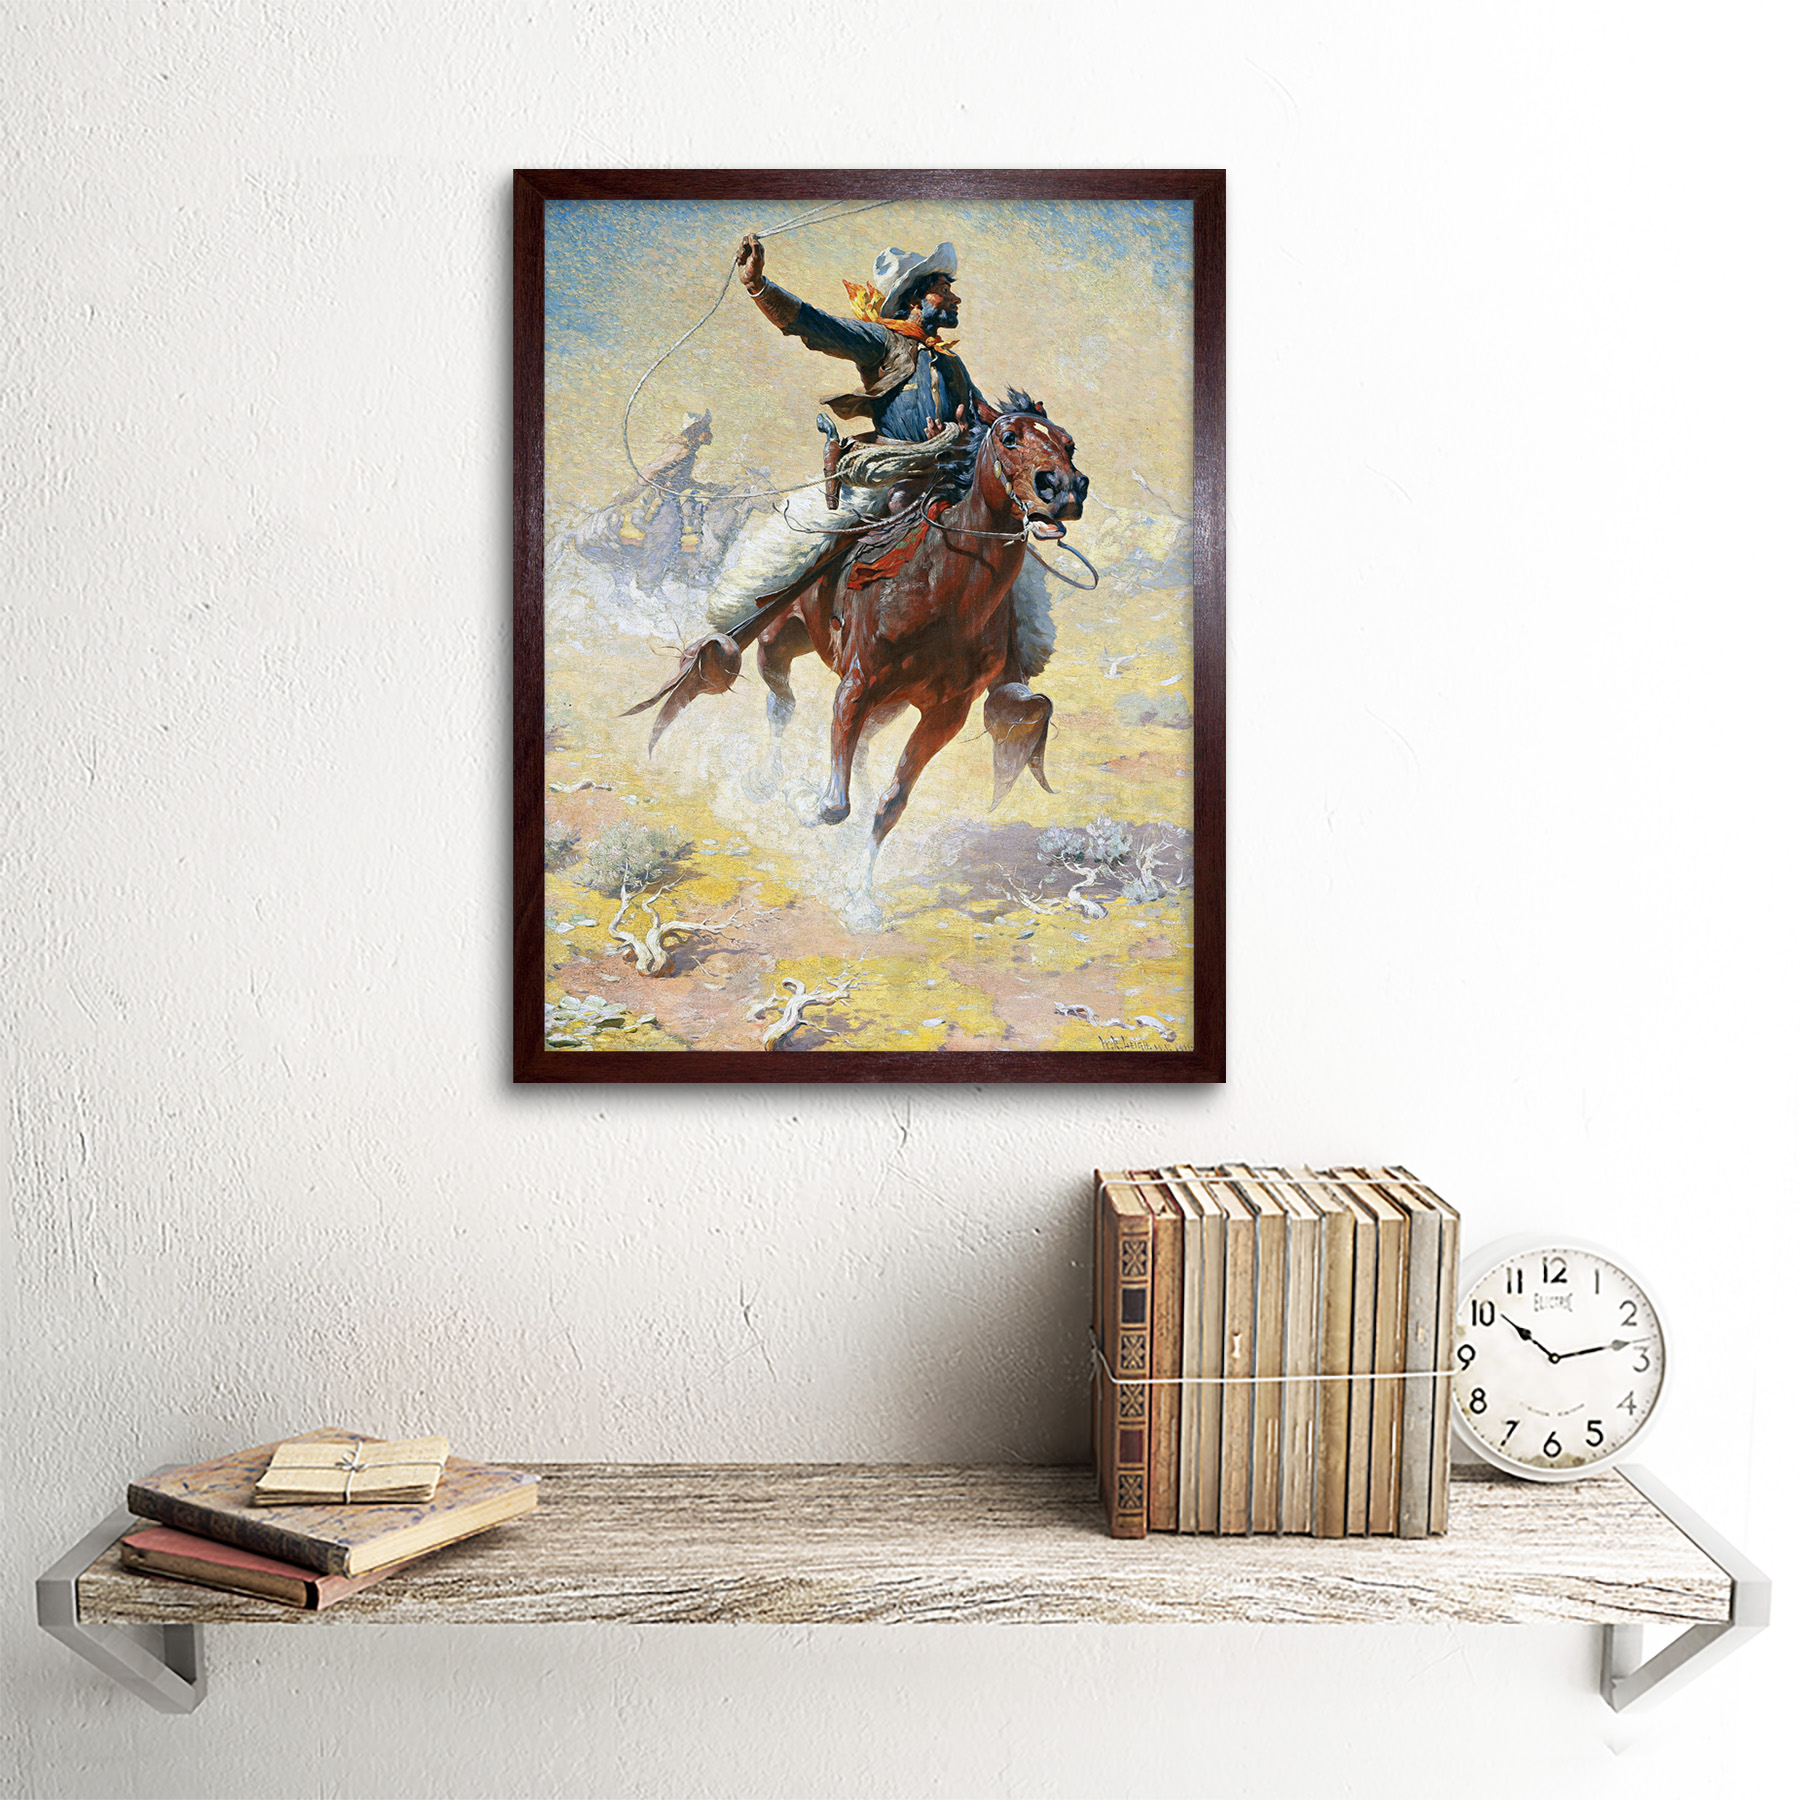 Leigh-The-Roping-Cowboy-Lasso-Horse-Painting-Art-Print-Framed-12x16 thumbnail 8